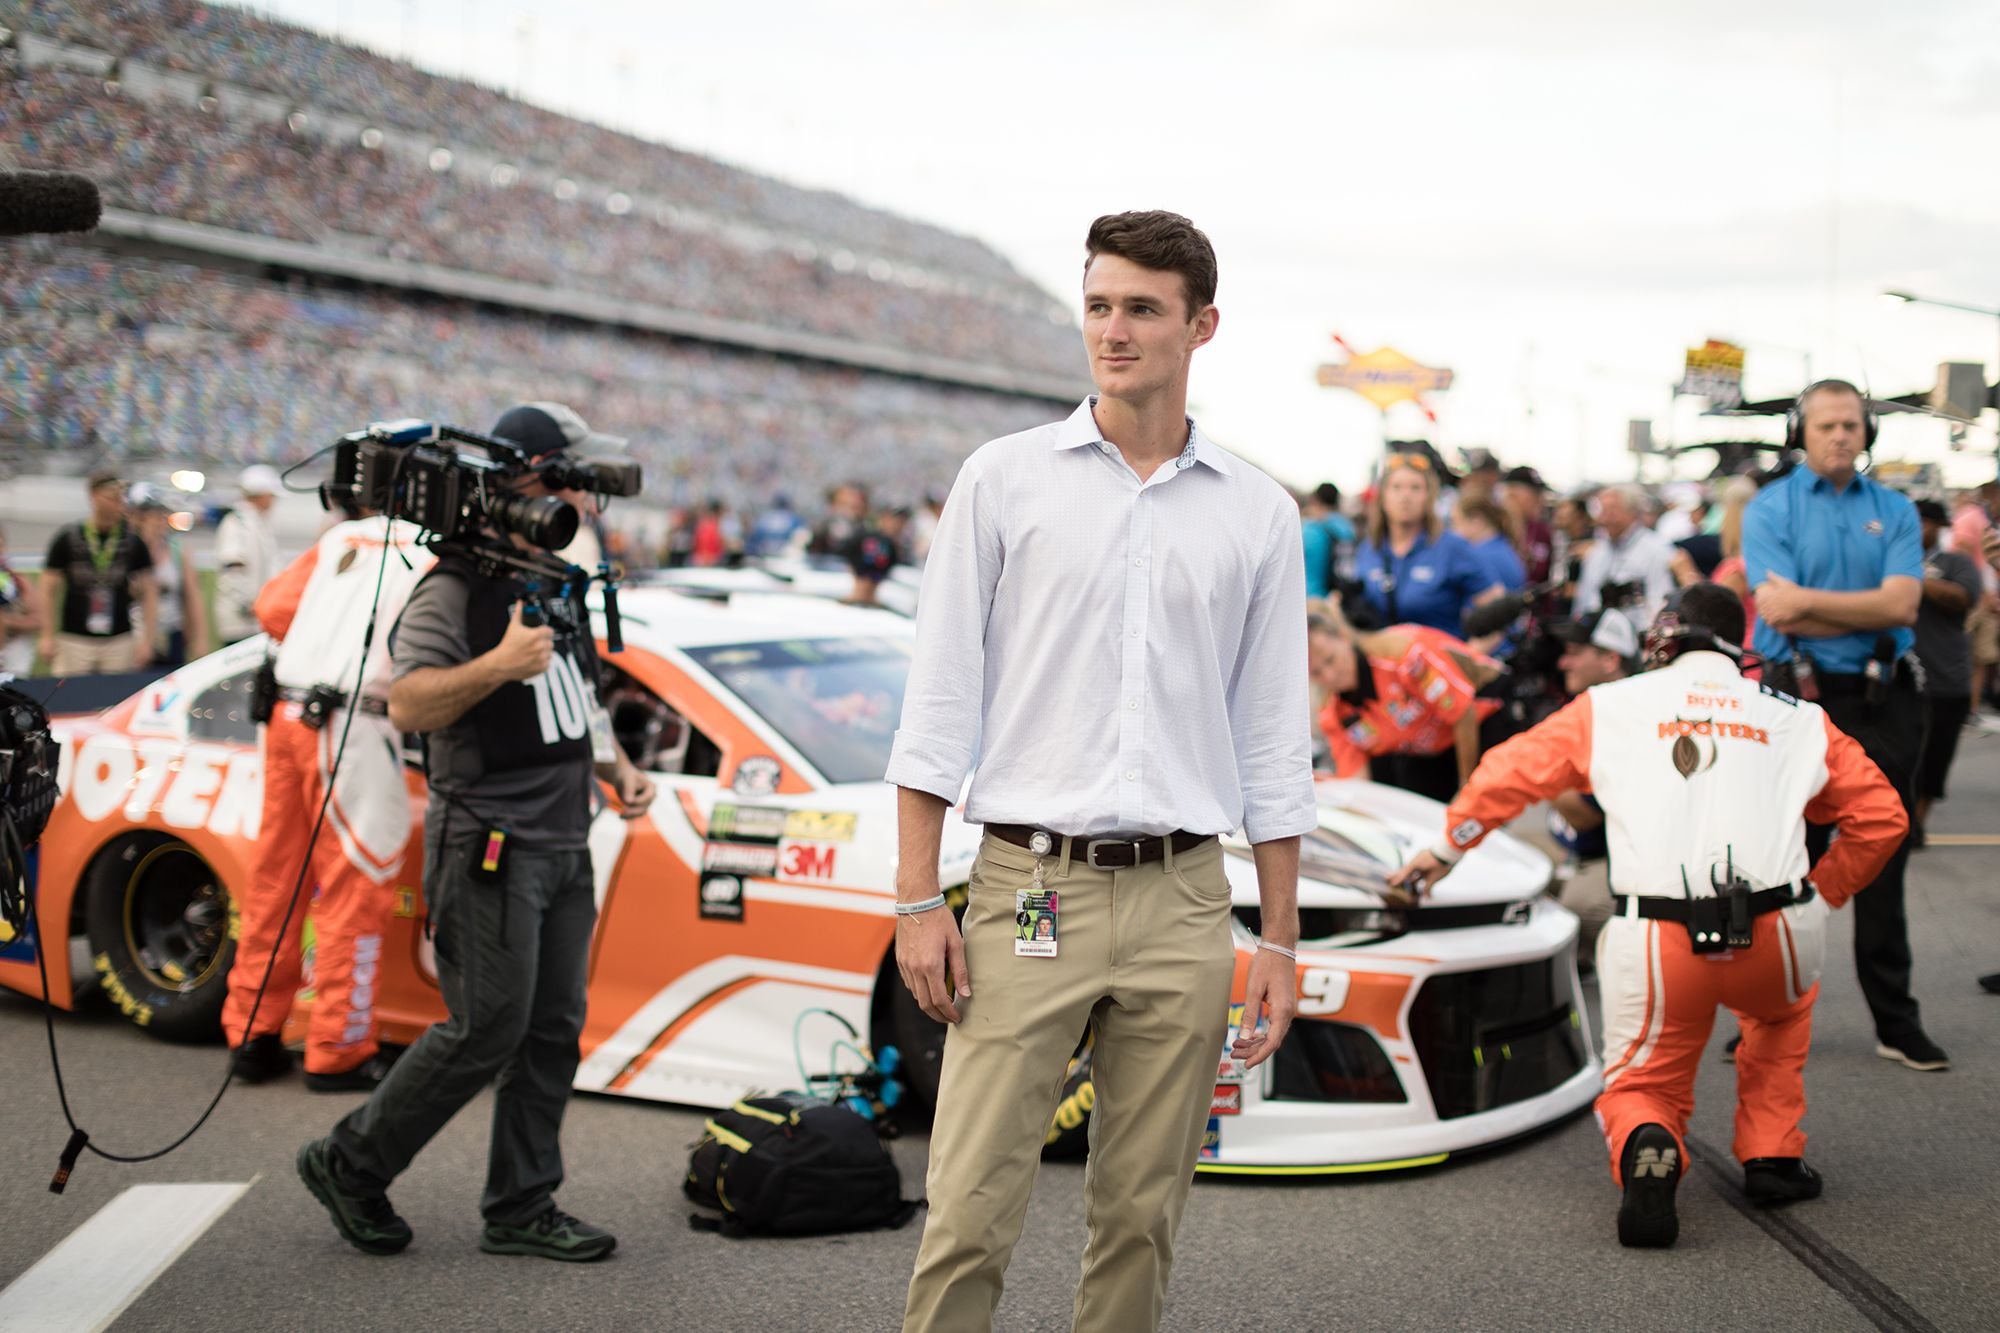 Ryan O'Donnell on the track at NASCAR.